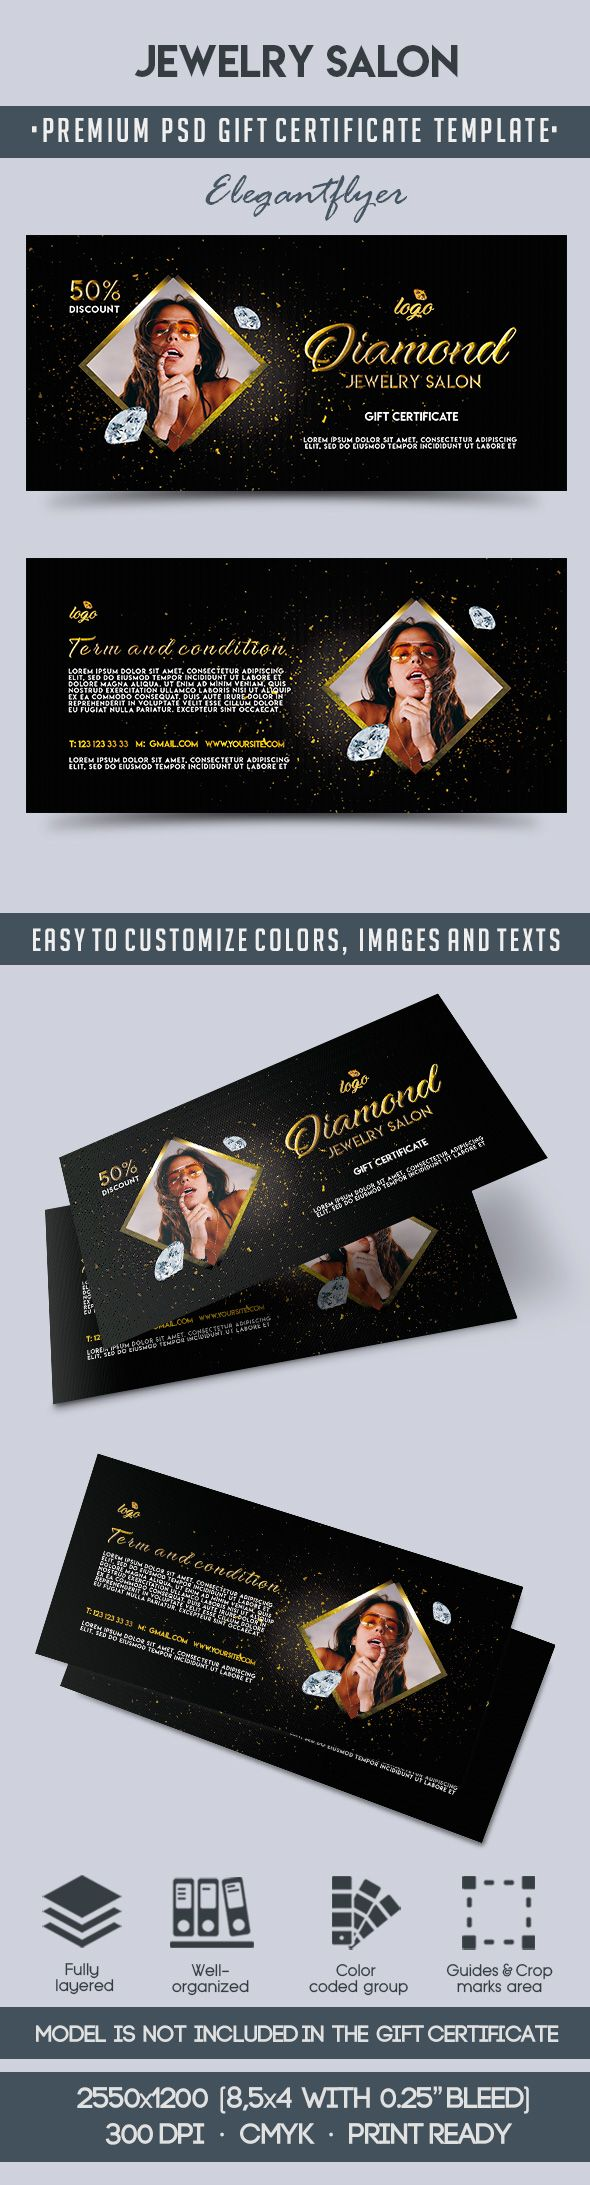 Jewelry Salon Voucher in PSD